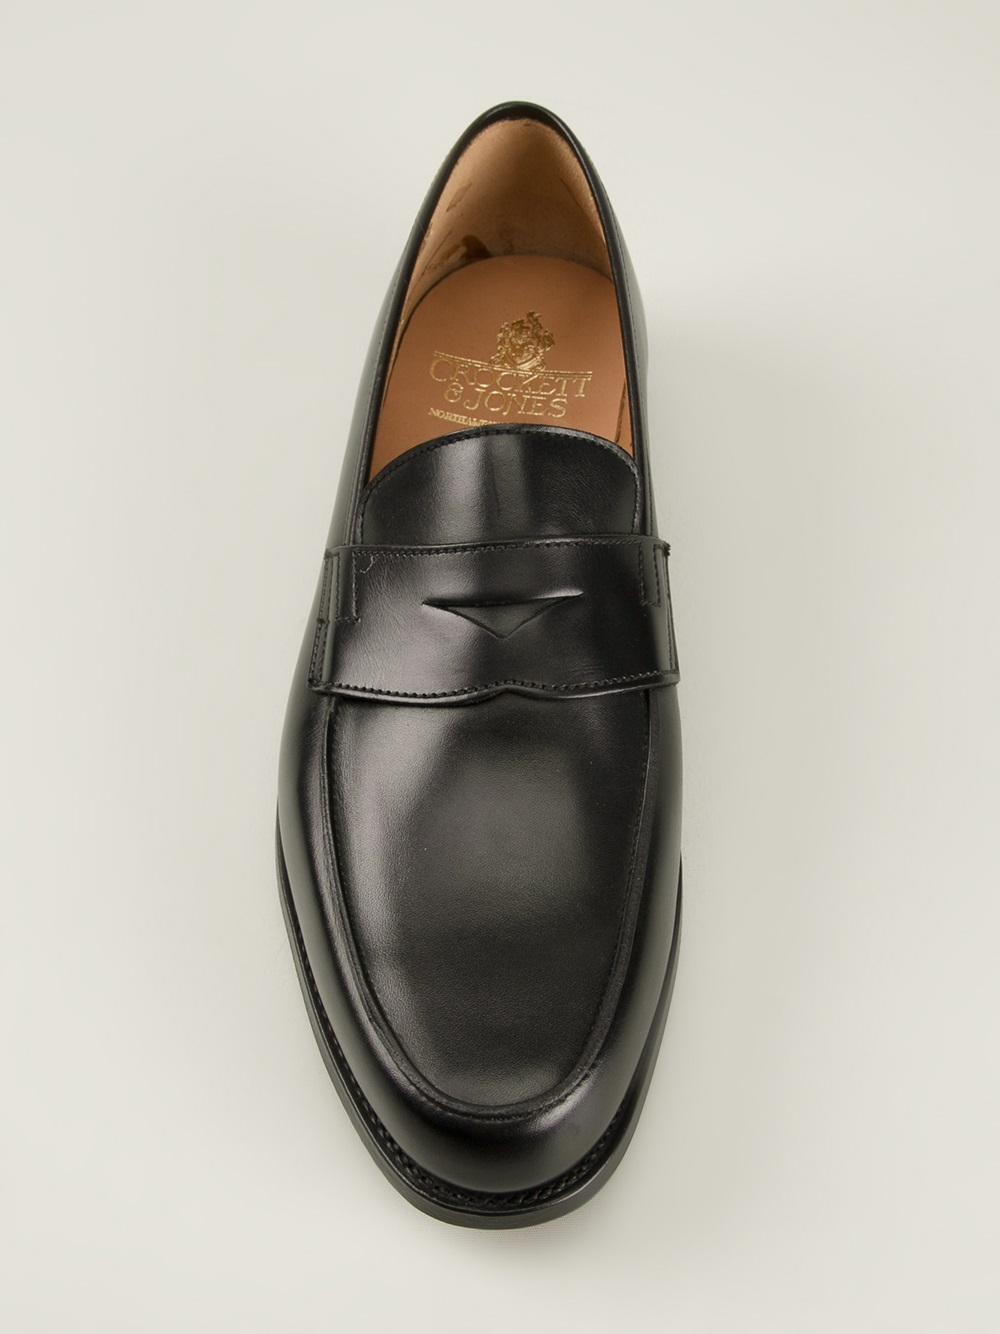 0de725e0a6b Lyst - Crockett and Jones  Poole  Penny Loafers in Black for Men